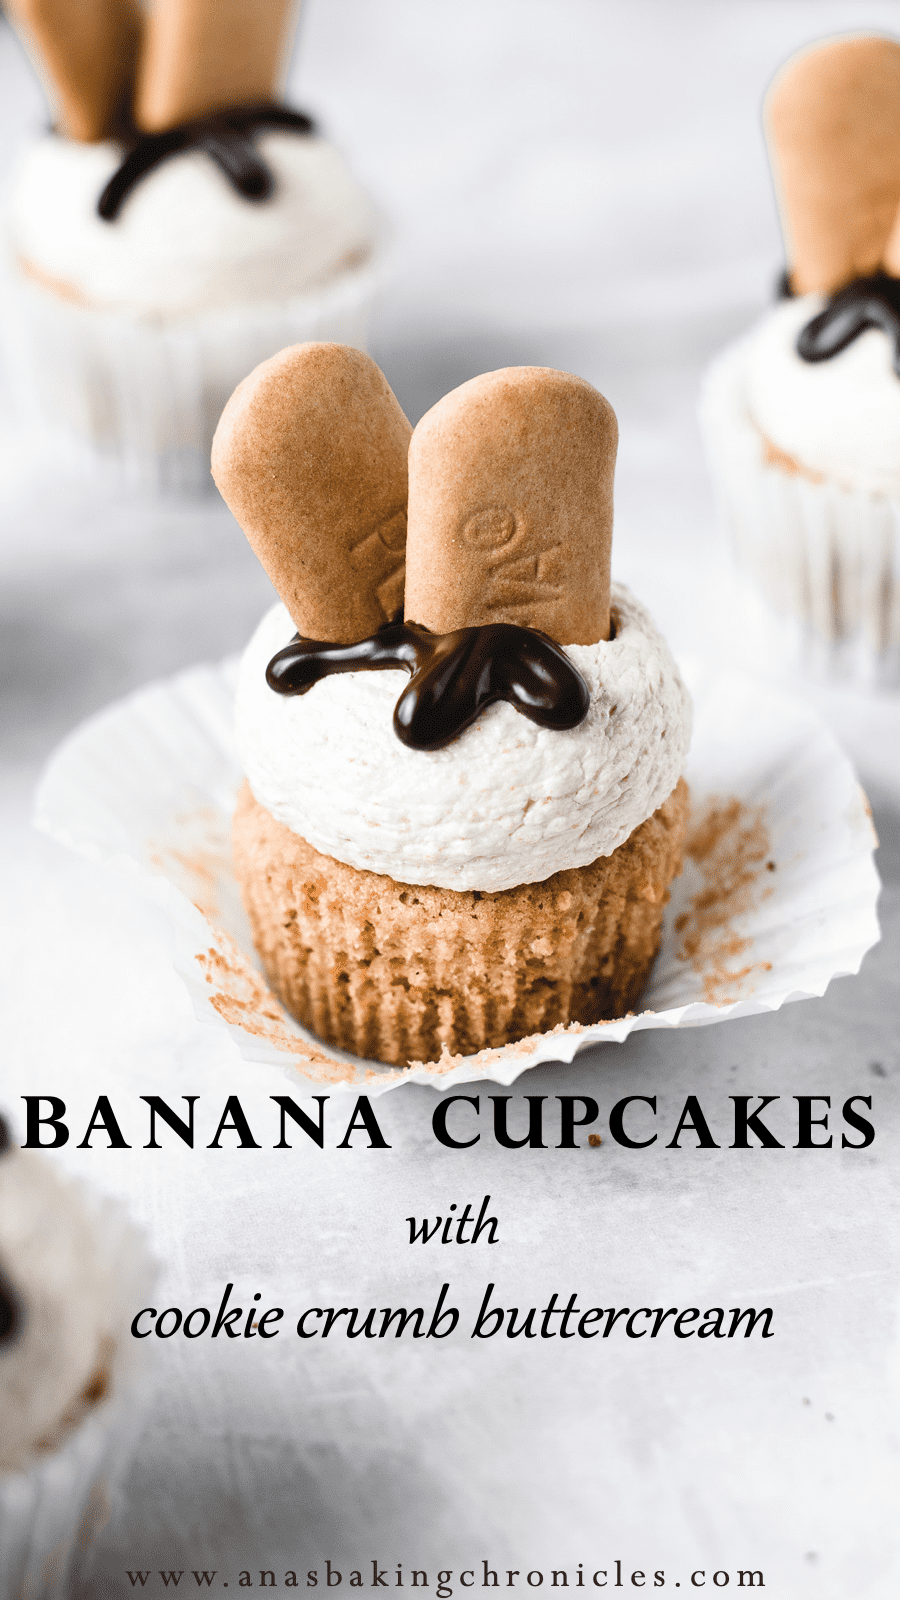 Banana Cupcakes with Cookie Crumb Buttercream